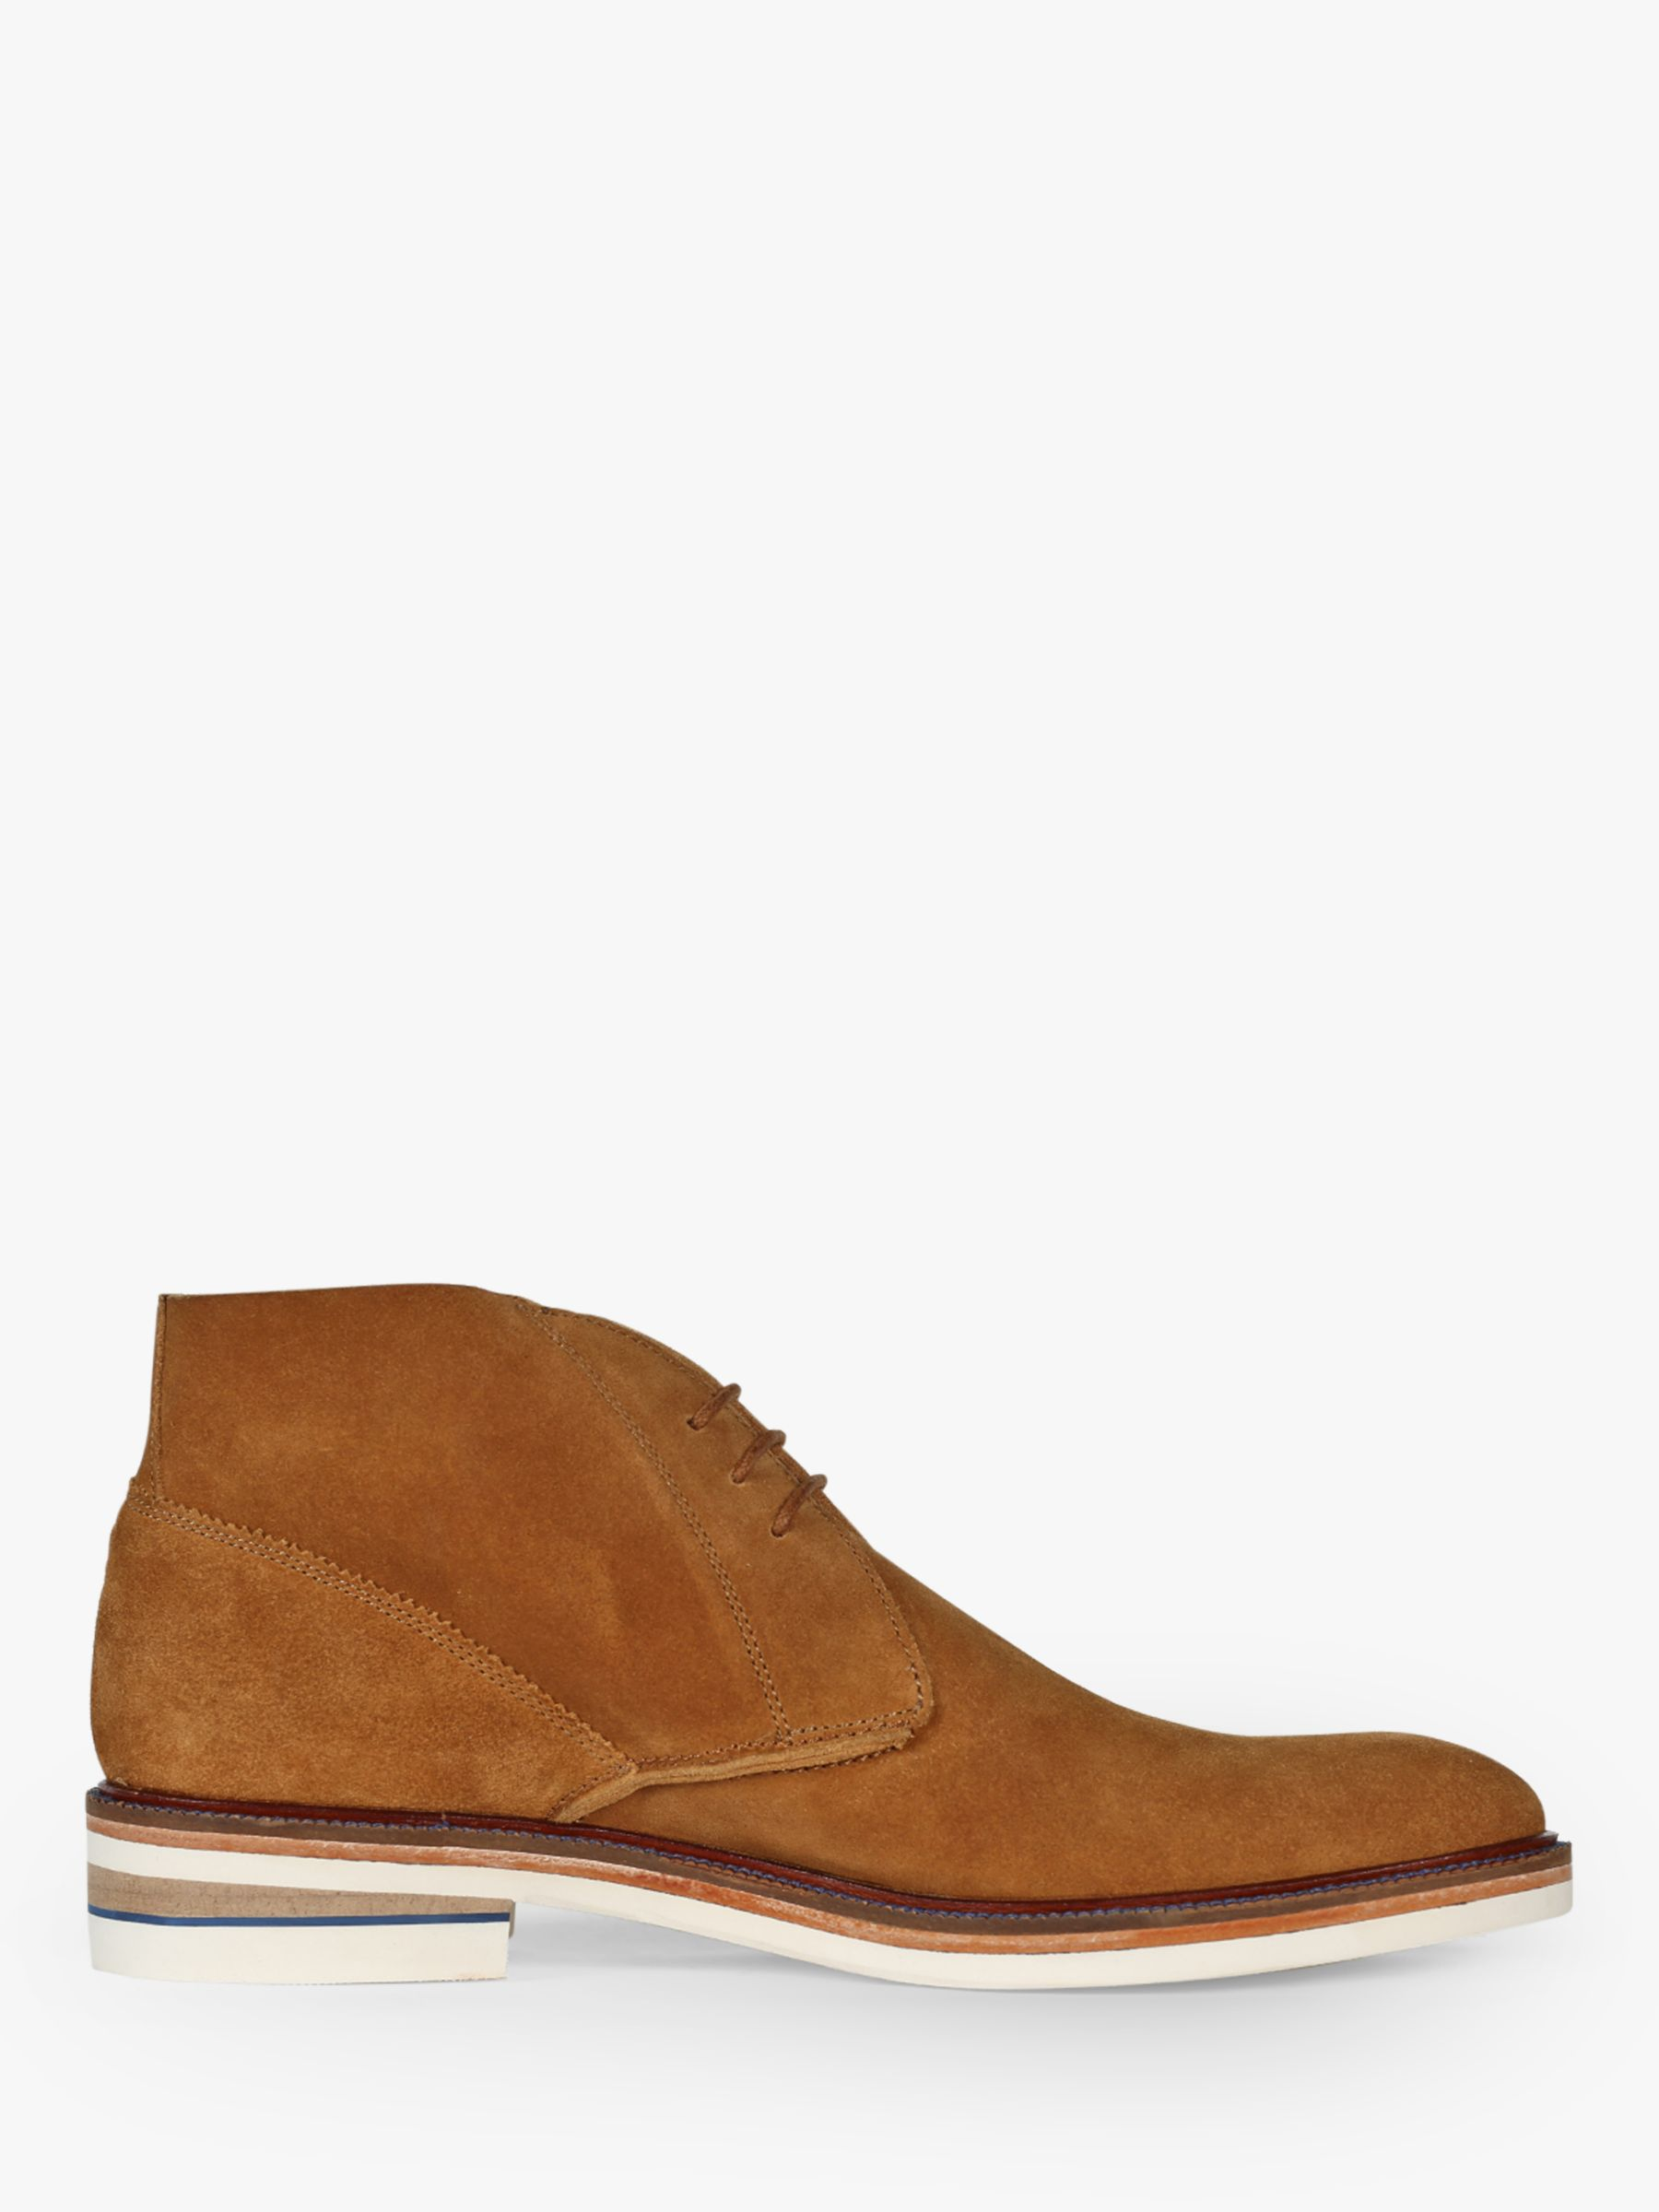 Oliver Sweeney Oliver Sweeney Vellow Suede Chukka Boots